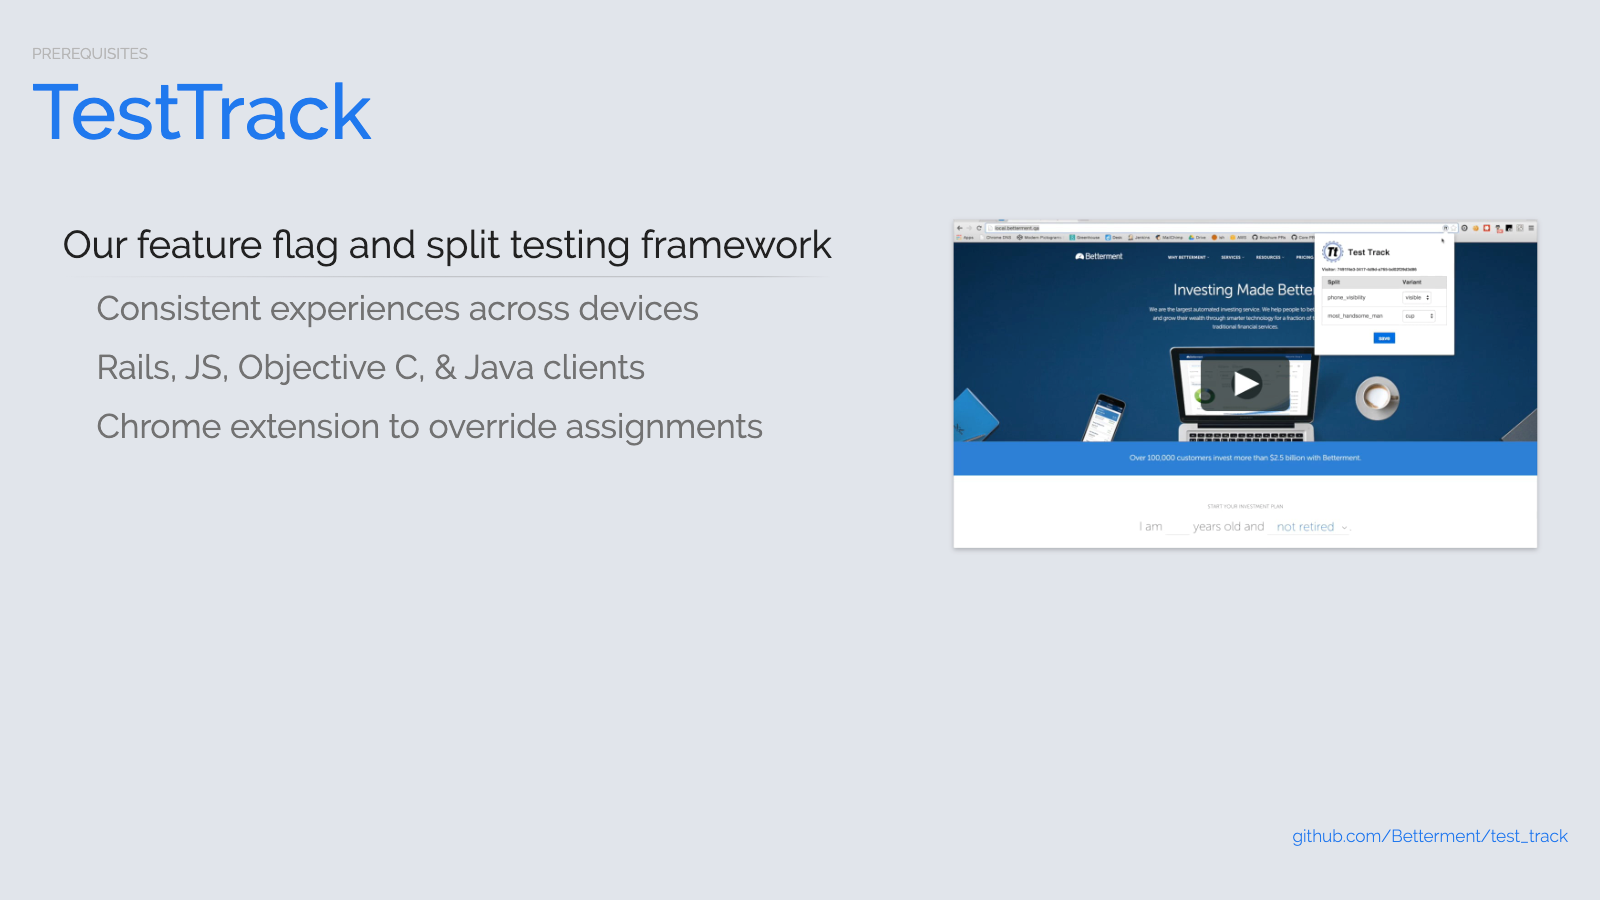 Slide content, TestTrack Betterment's feature flag and split testing framework